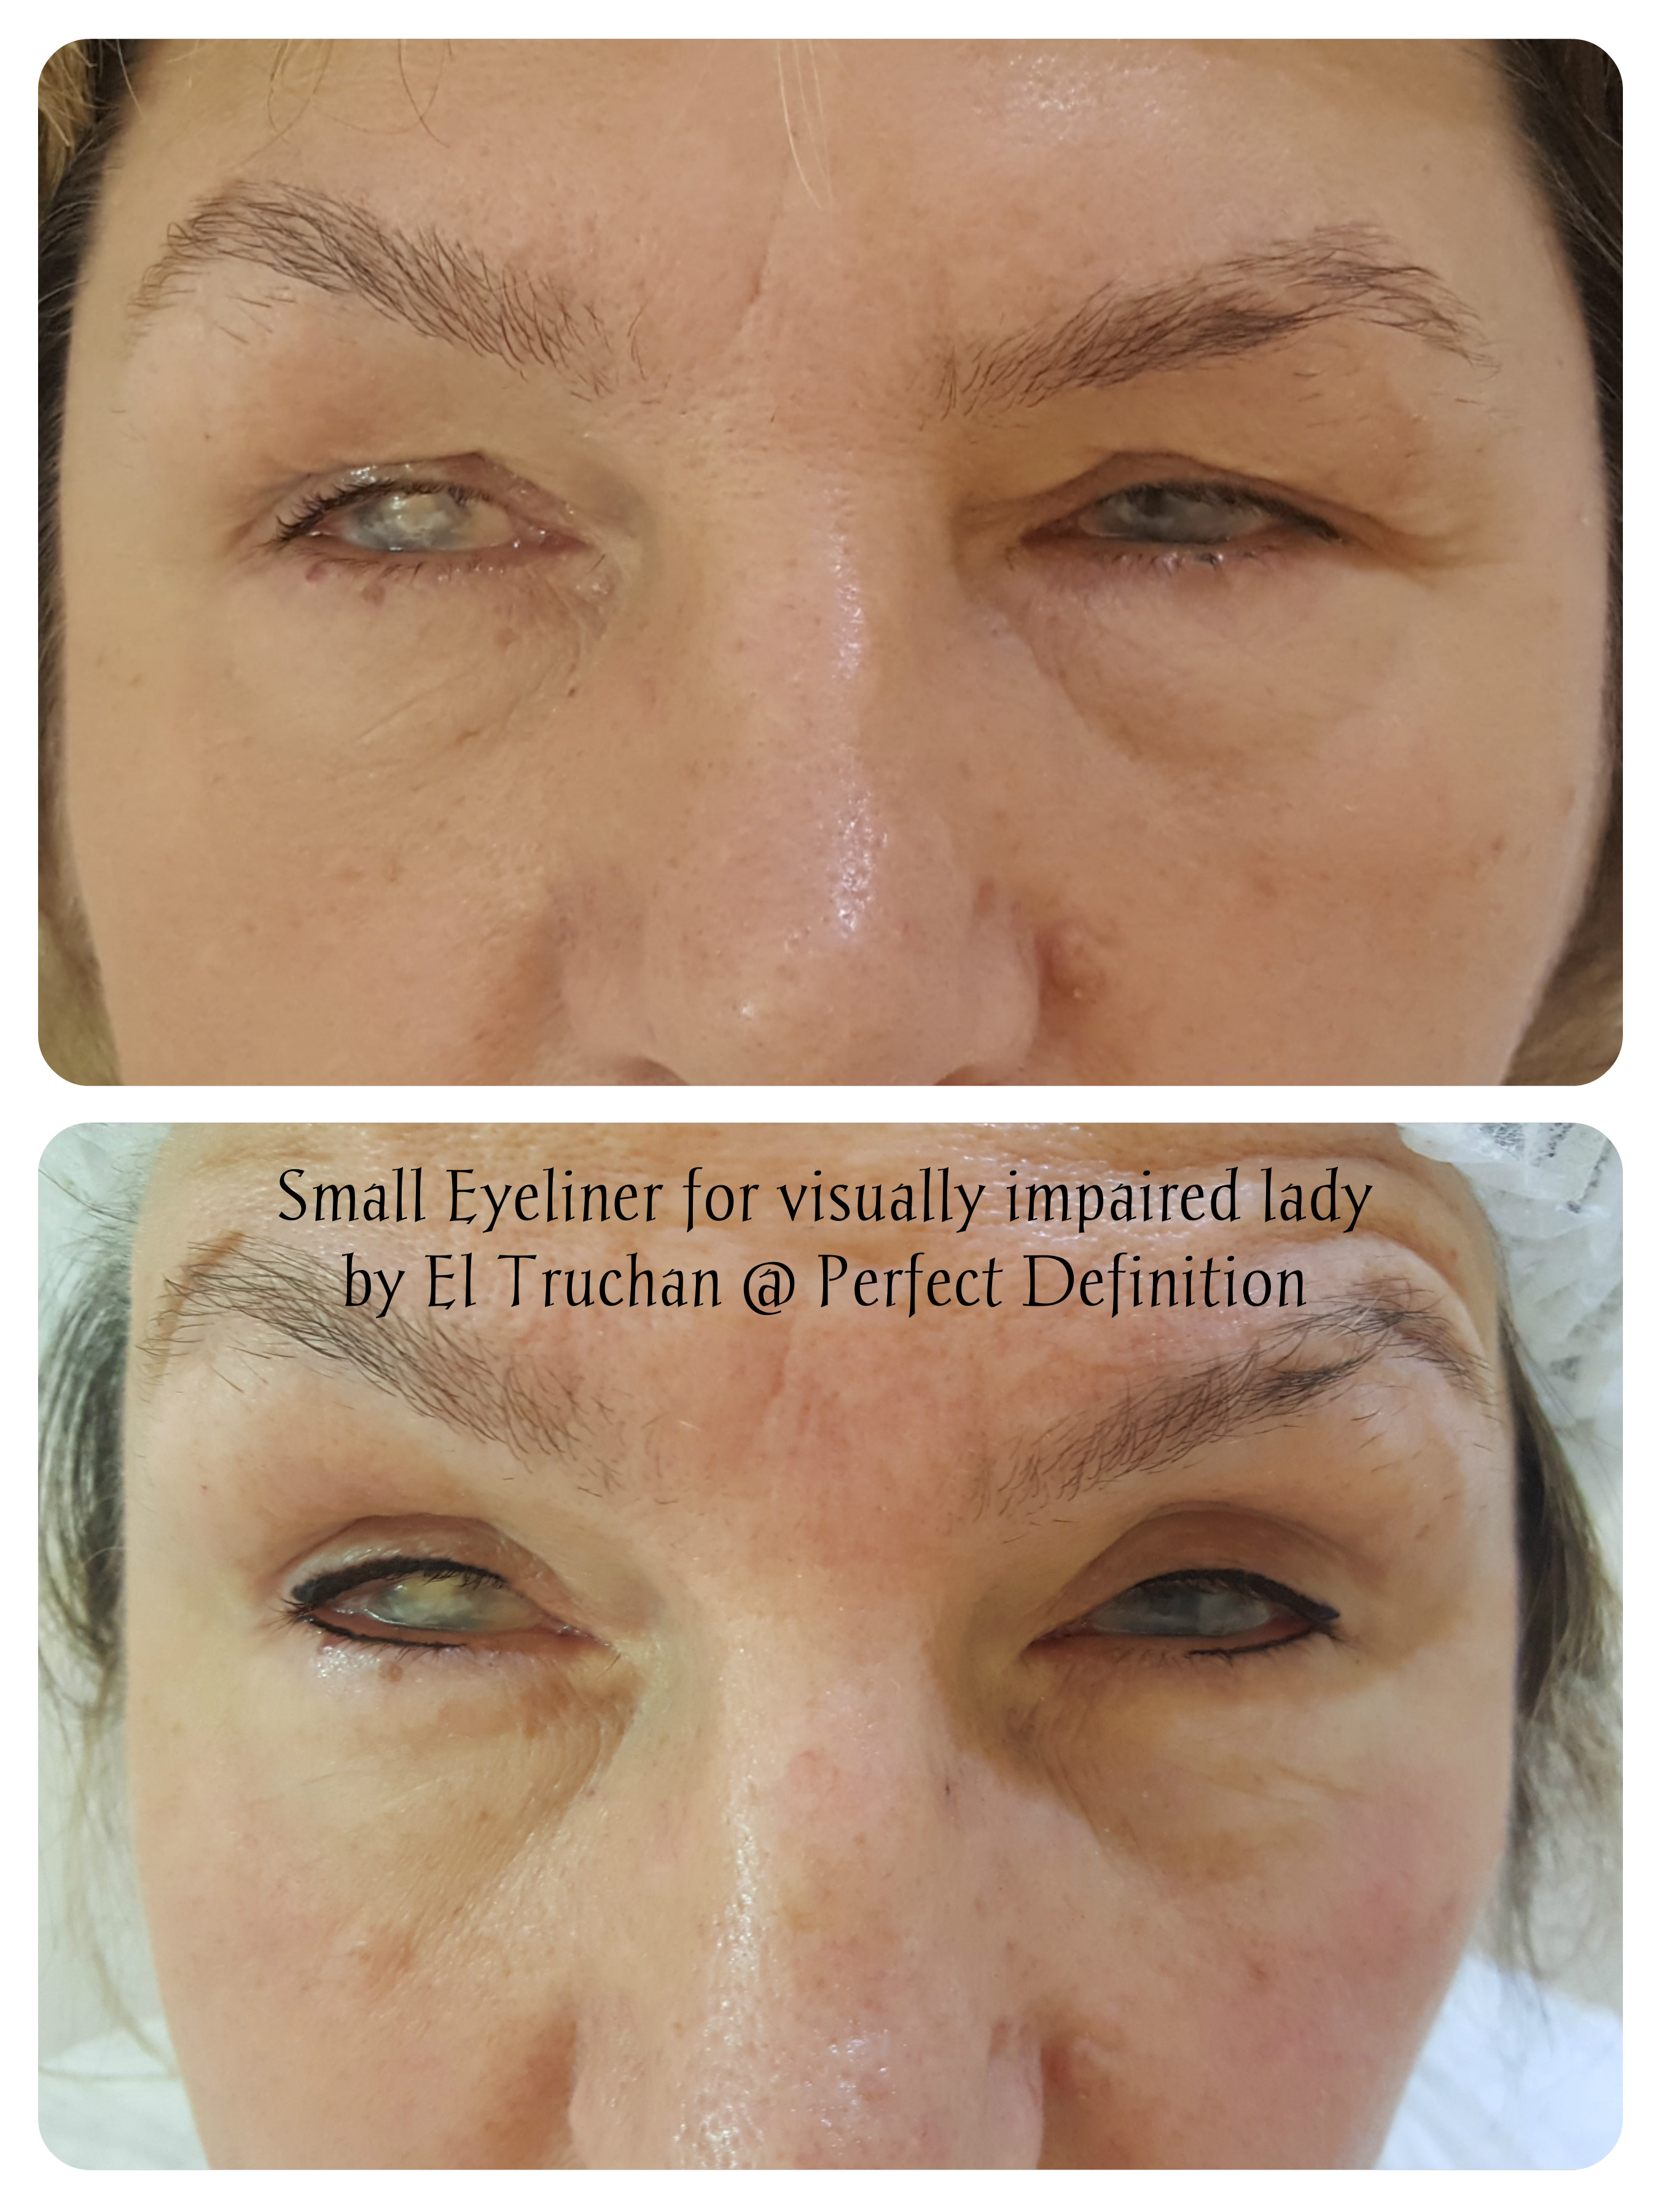 Eyeliner for Visually impaired lady by El Truchan _ Perfect Definition